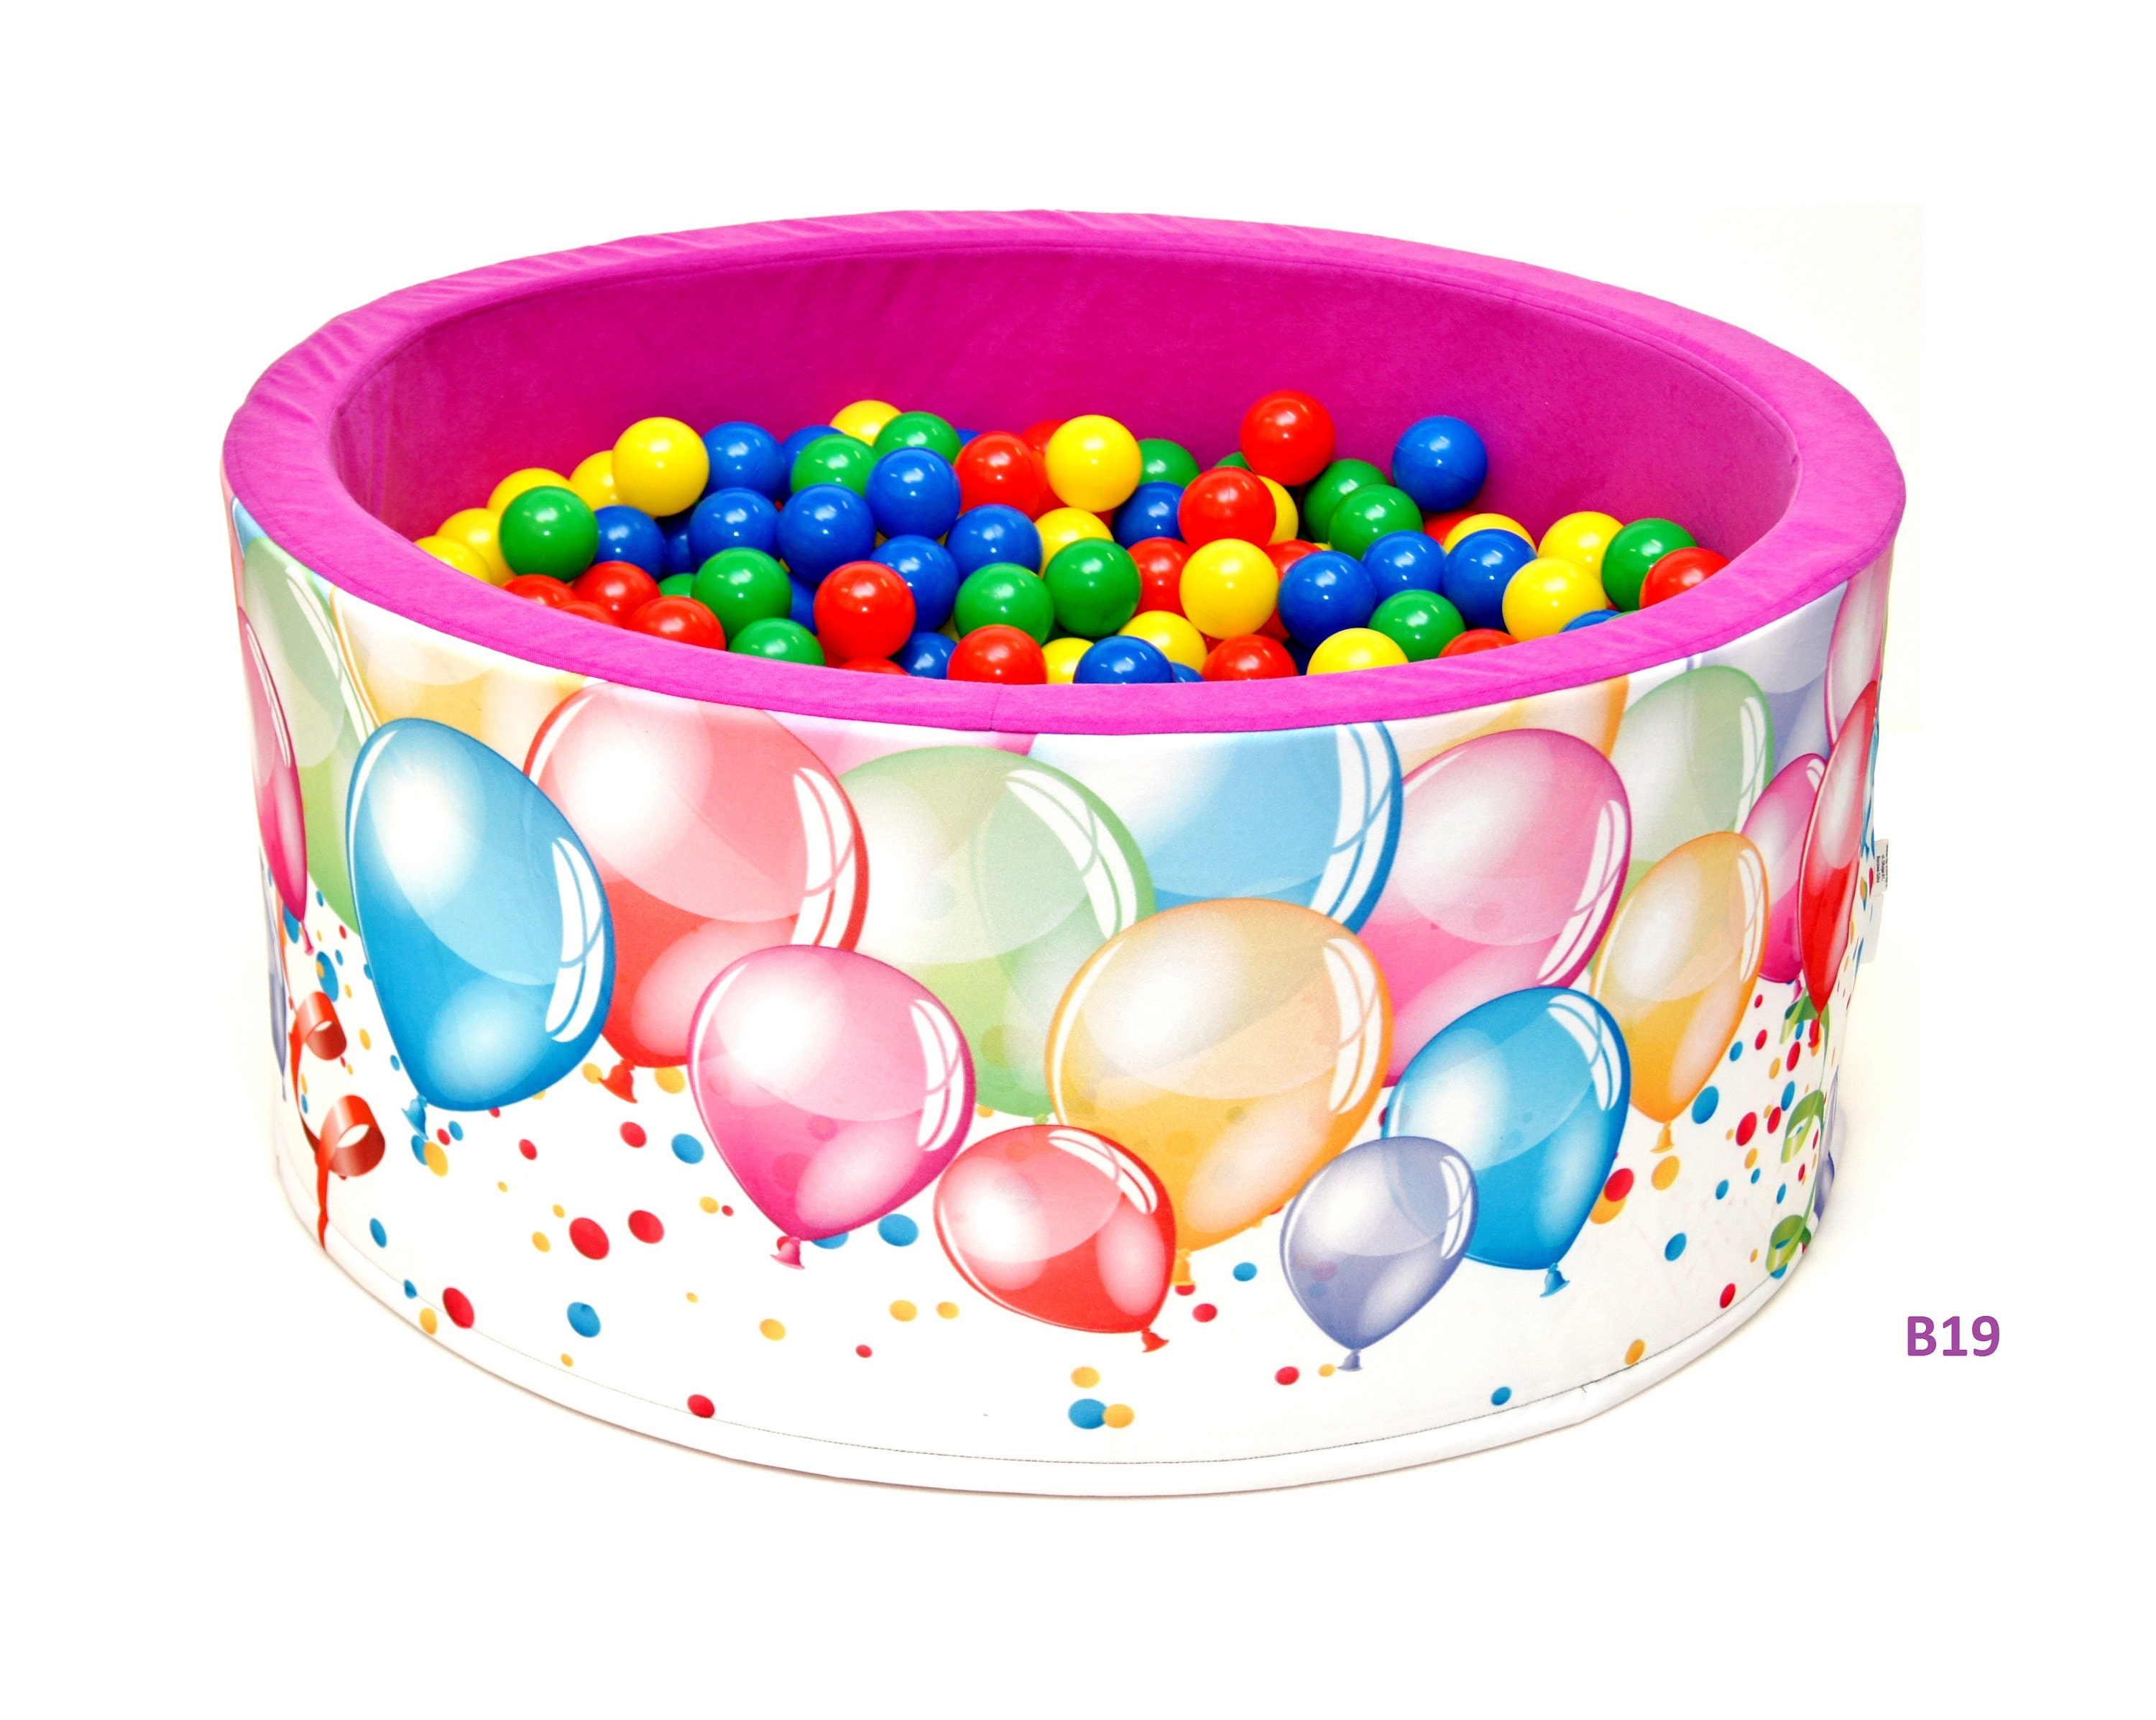 Velvet ball pit-200 balls-90x40-ball pit-Replacement Cover! Baby foam ball pit